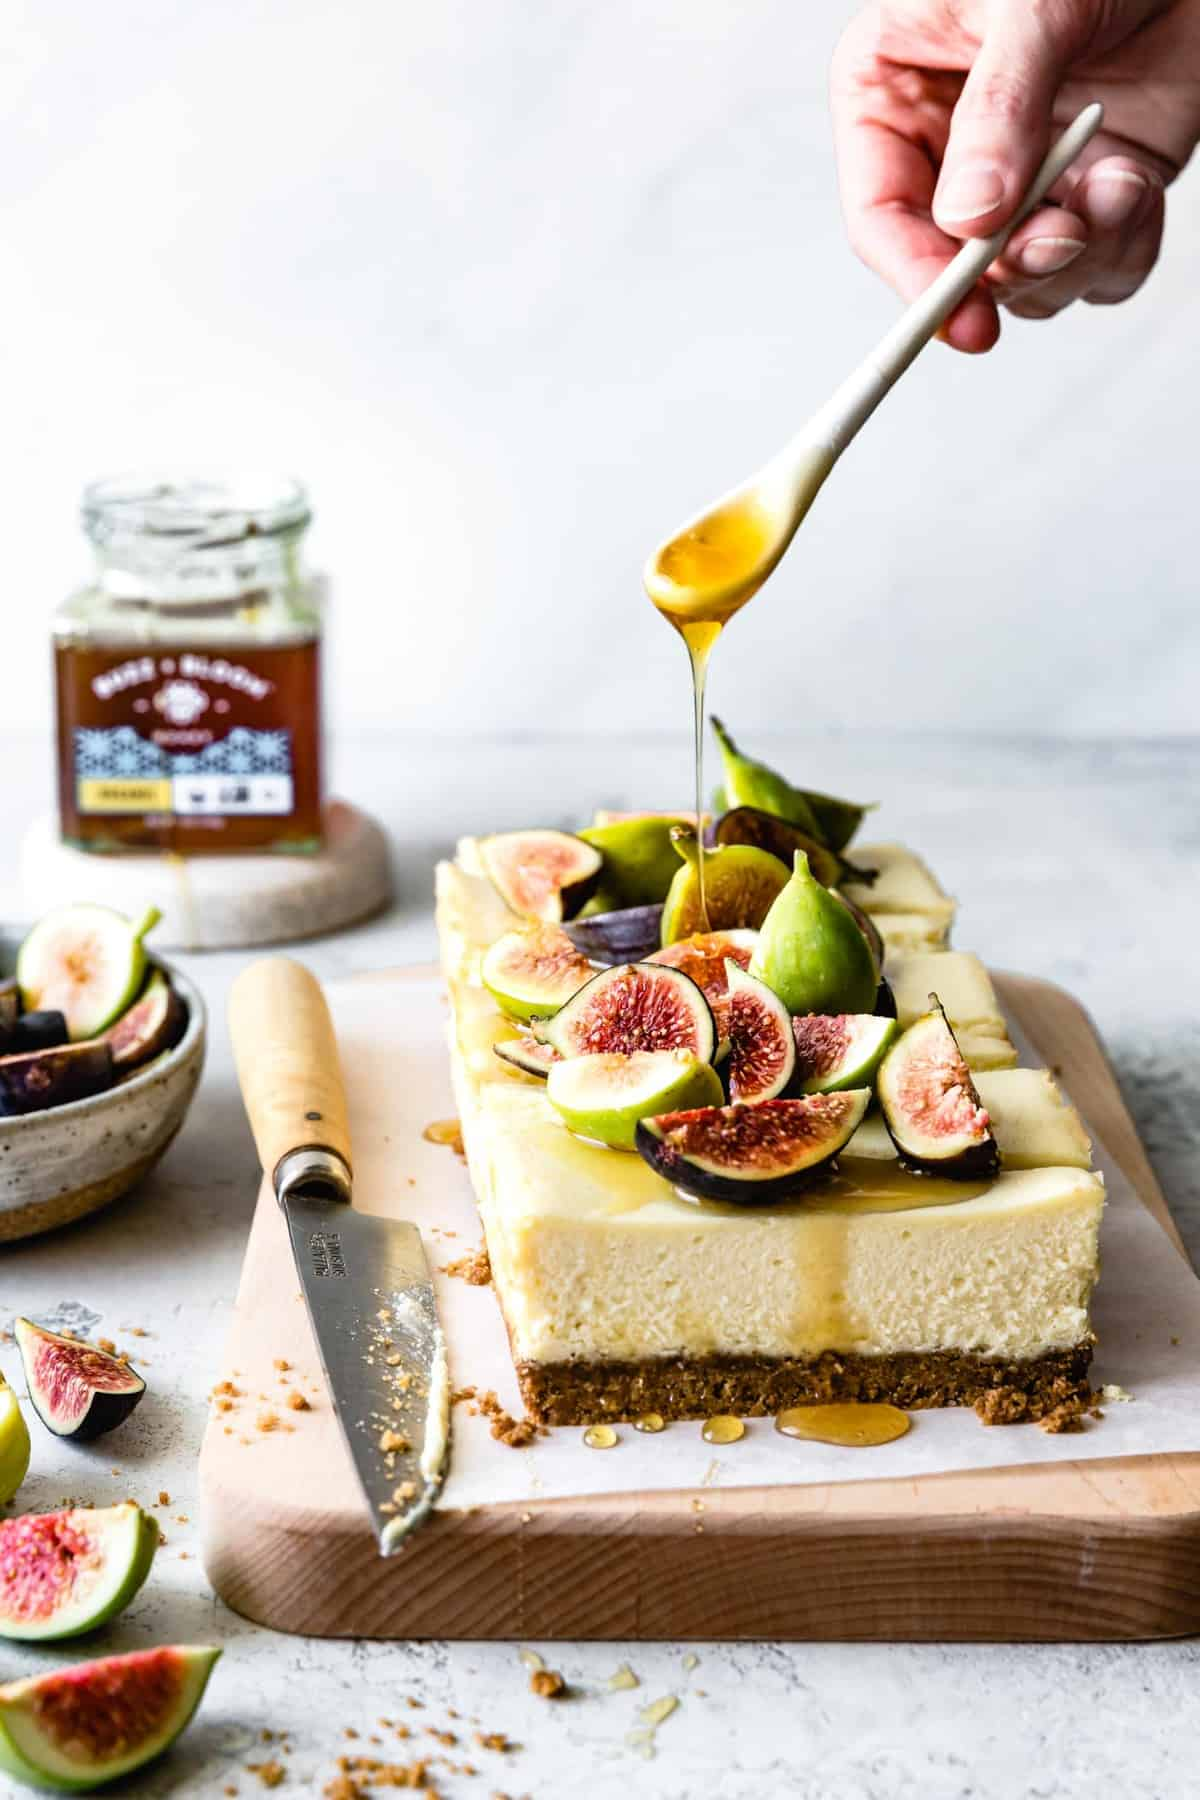 drizzling honey over fresh figs on GF cheesecake